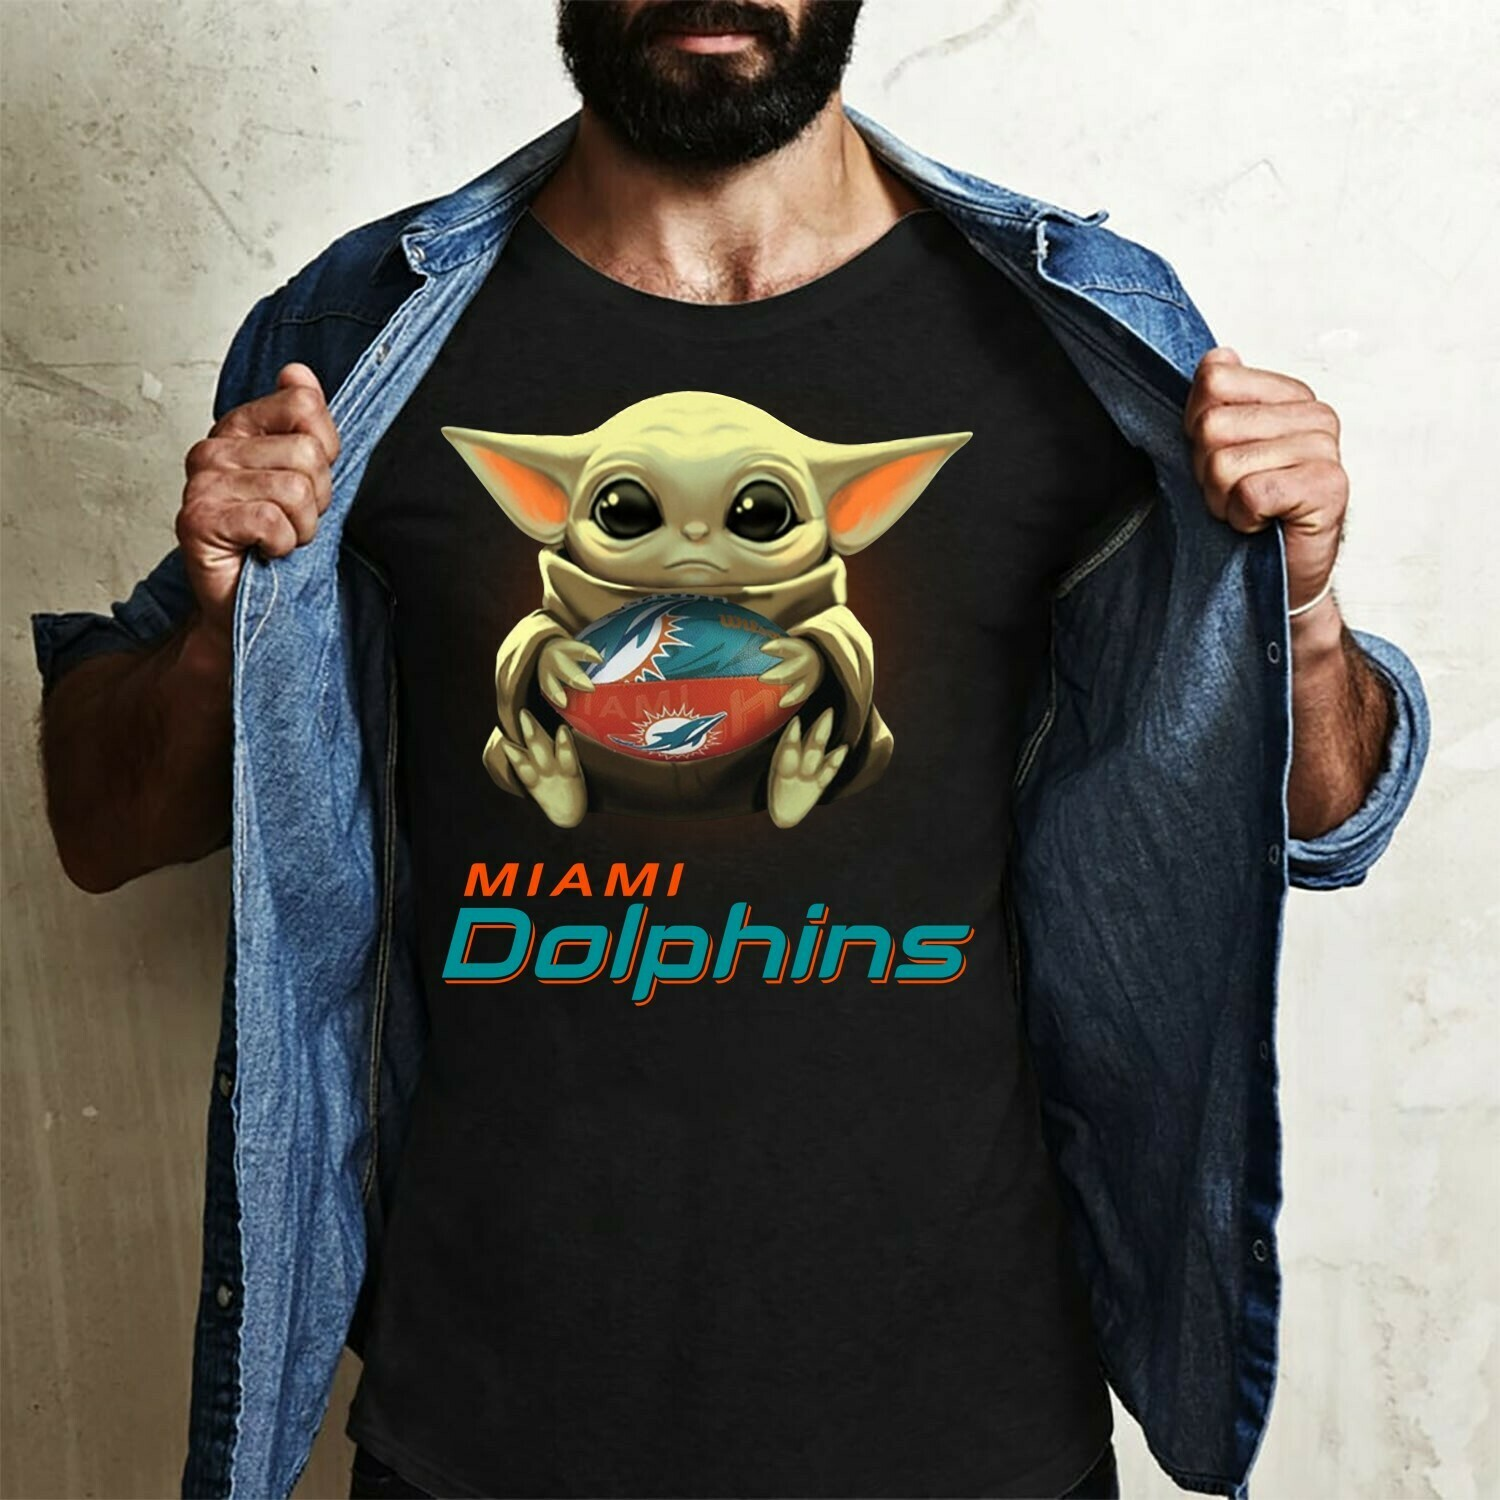 Miami Dolphins Baby Yoda Star Wars The Mandalorian The Child First Memories Floating NBA Football Dad Mon Kid Fan Gift T-Shirt Long Sleeve Sweatshirt Hoodie Jolly Family Gifts